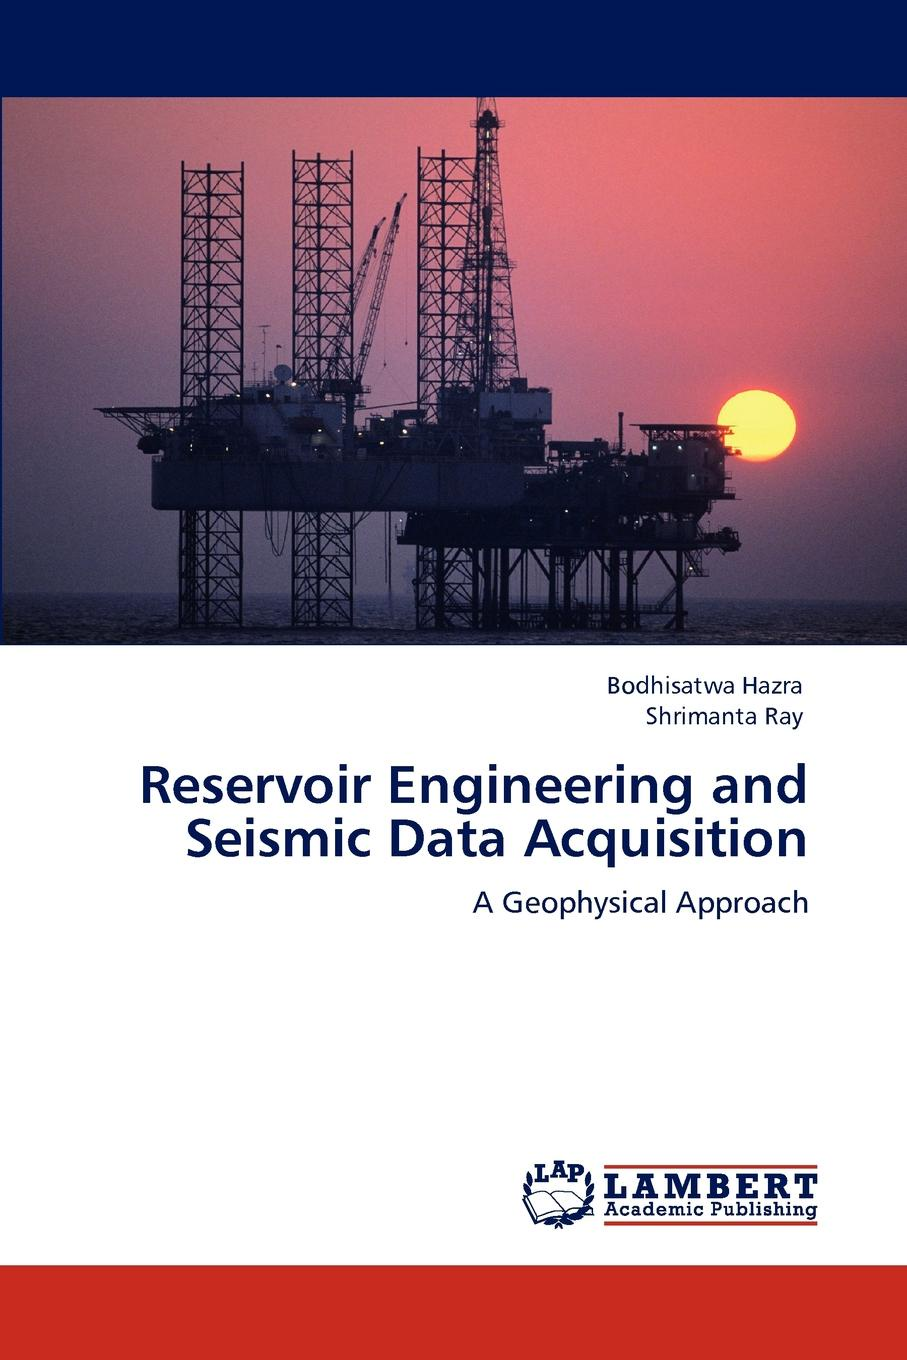 цена Bodhisatwa Hazra, Shrimanta Ray Reservoir Engineering and Seismic Data Acquisition в интернет-магазинах